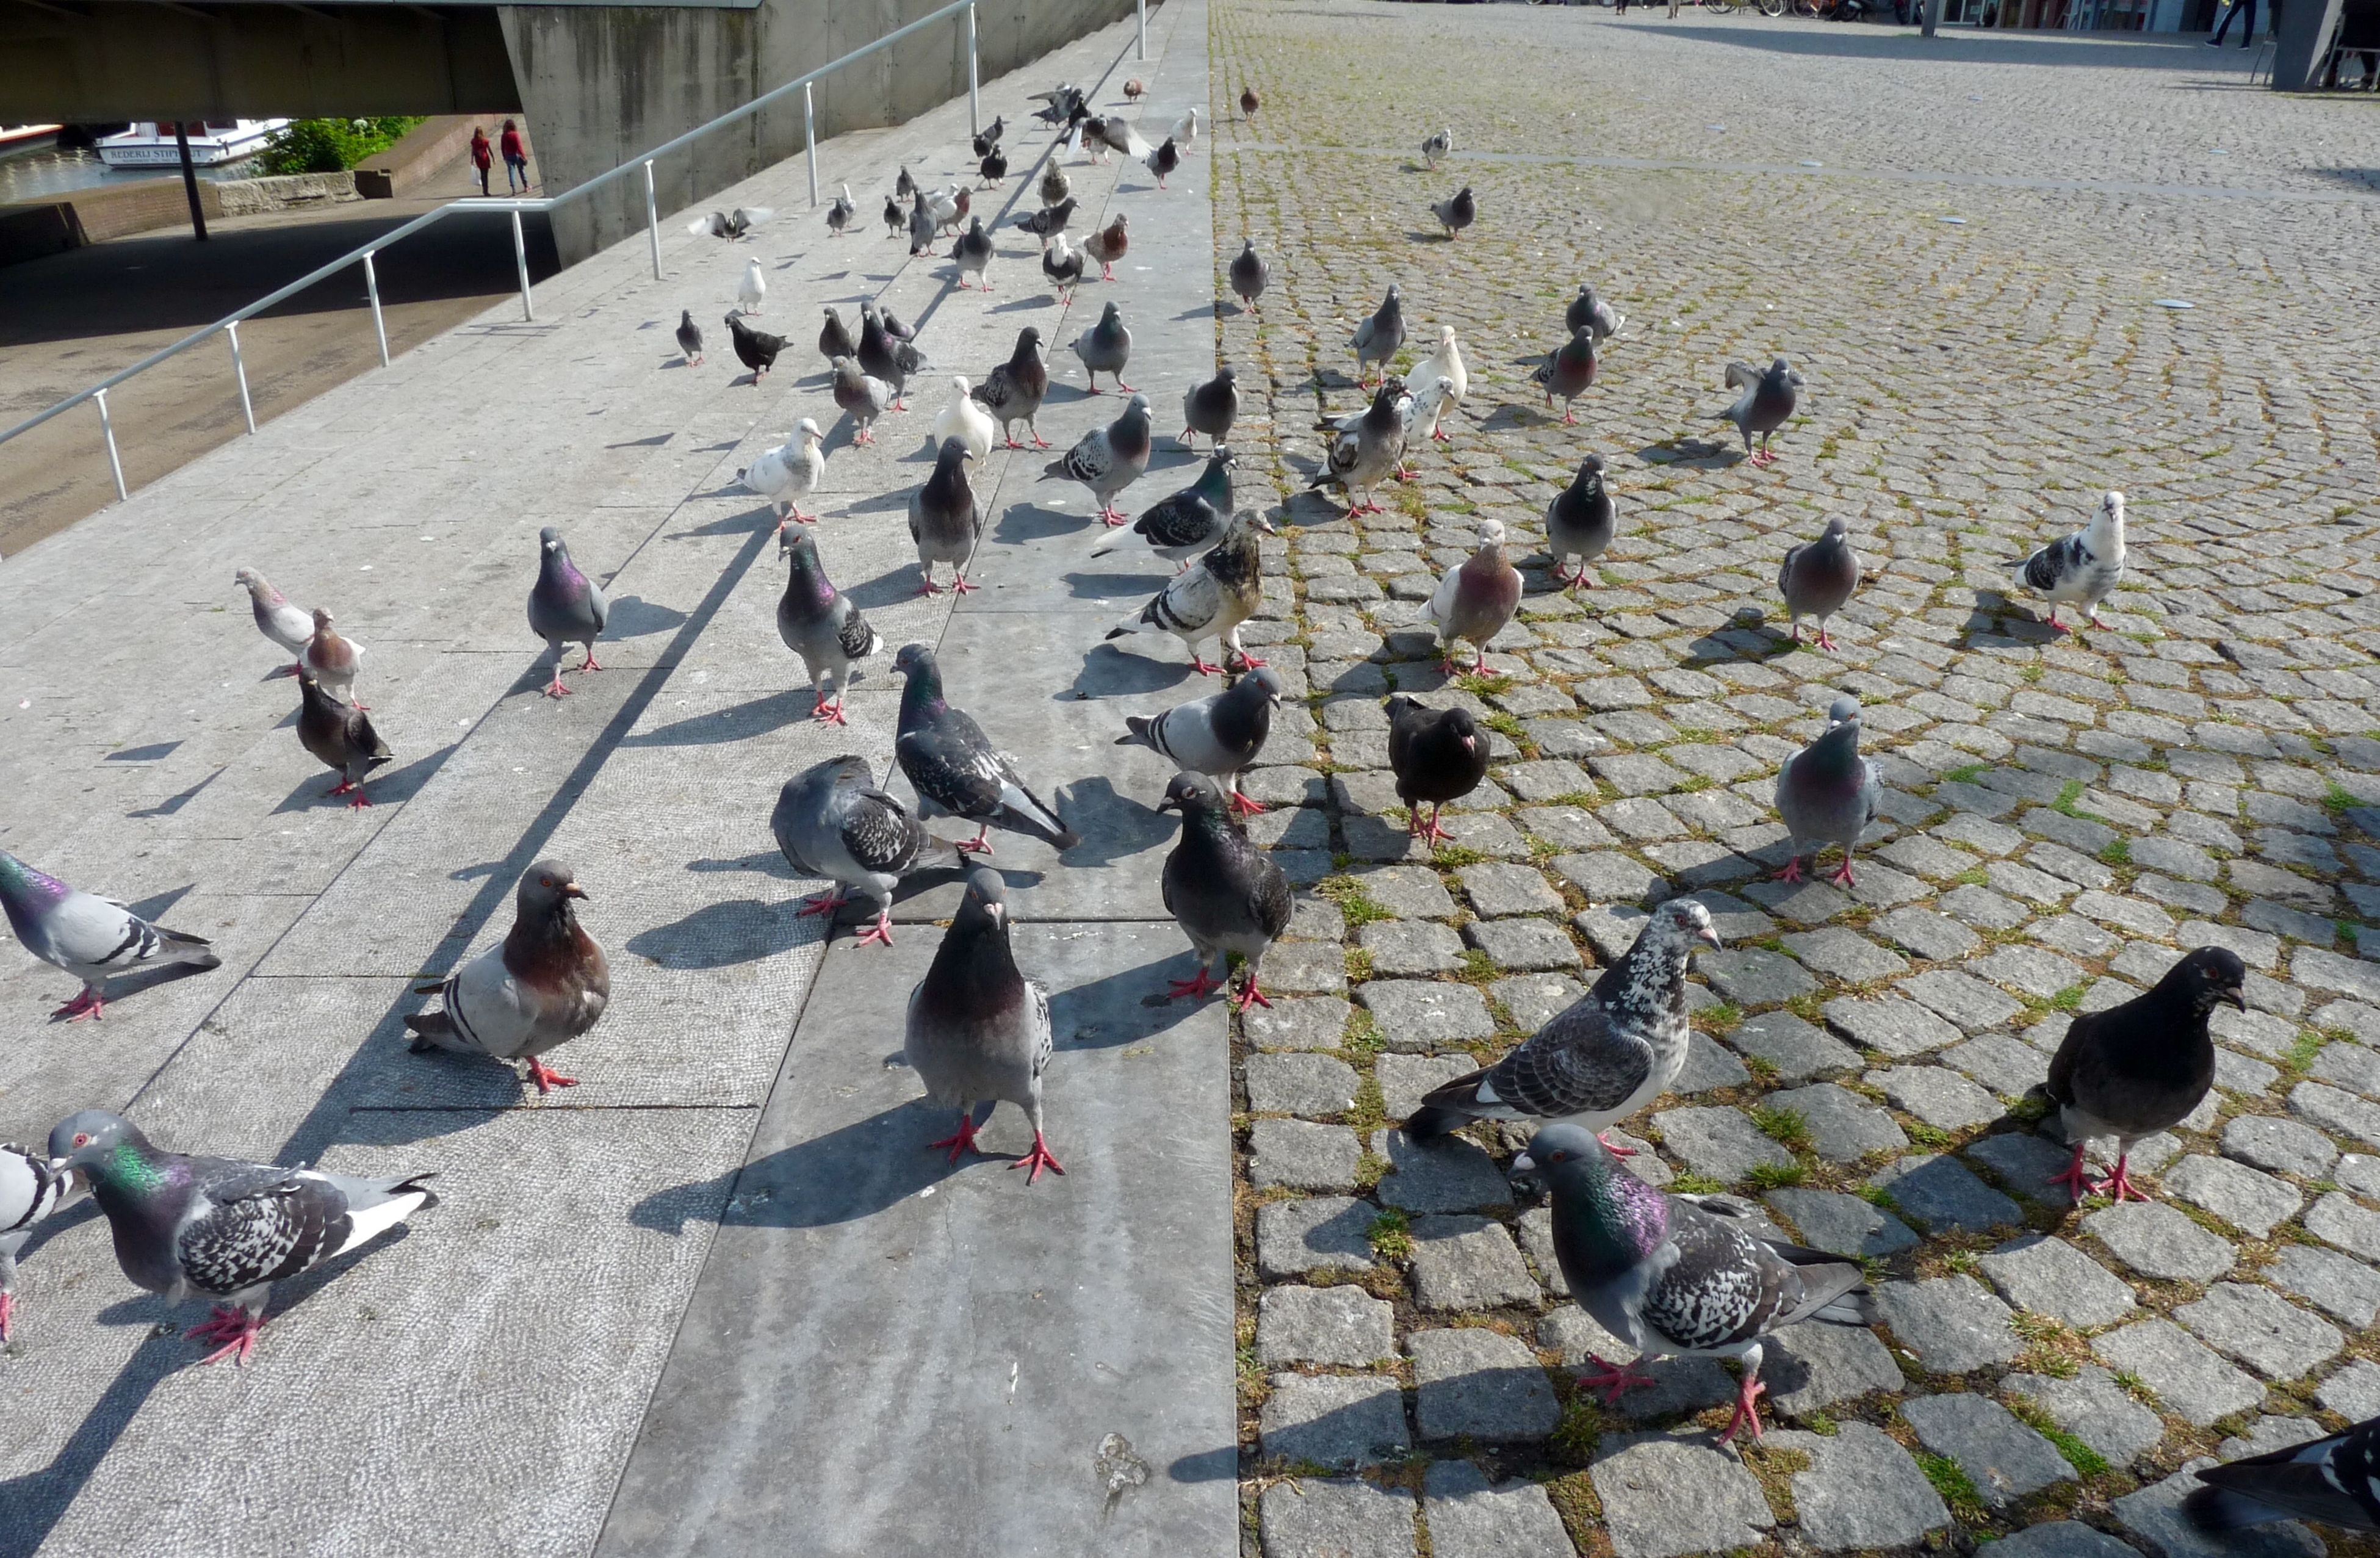 bird, animal themes, pigeon, animals in the wild, wildlife, flock of birds, street, high angle view, built structure, day, outdoors, building exterior, sidewalk, sunlight, medium group of animals, architecture, shadow, cobblestone, pavement